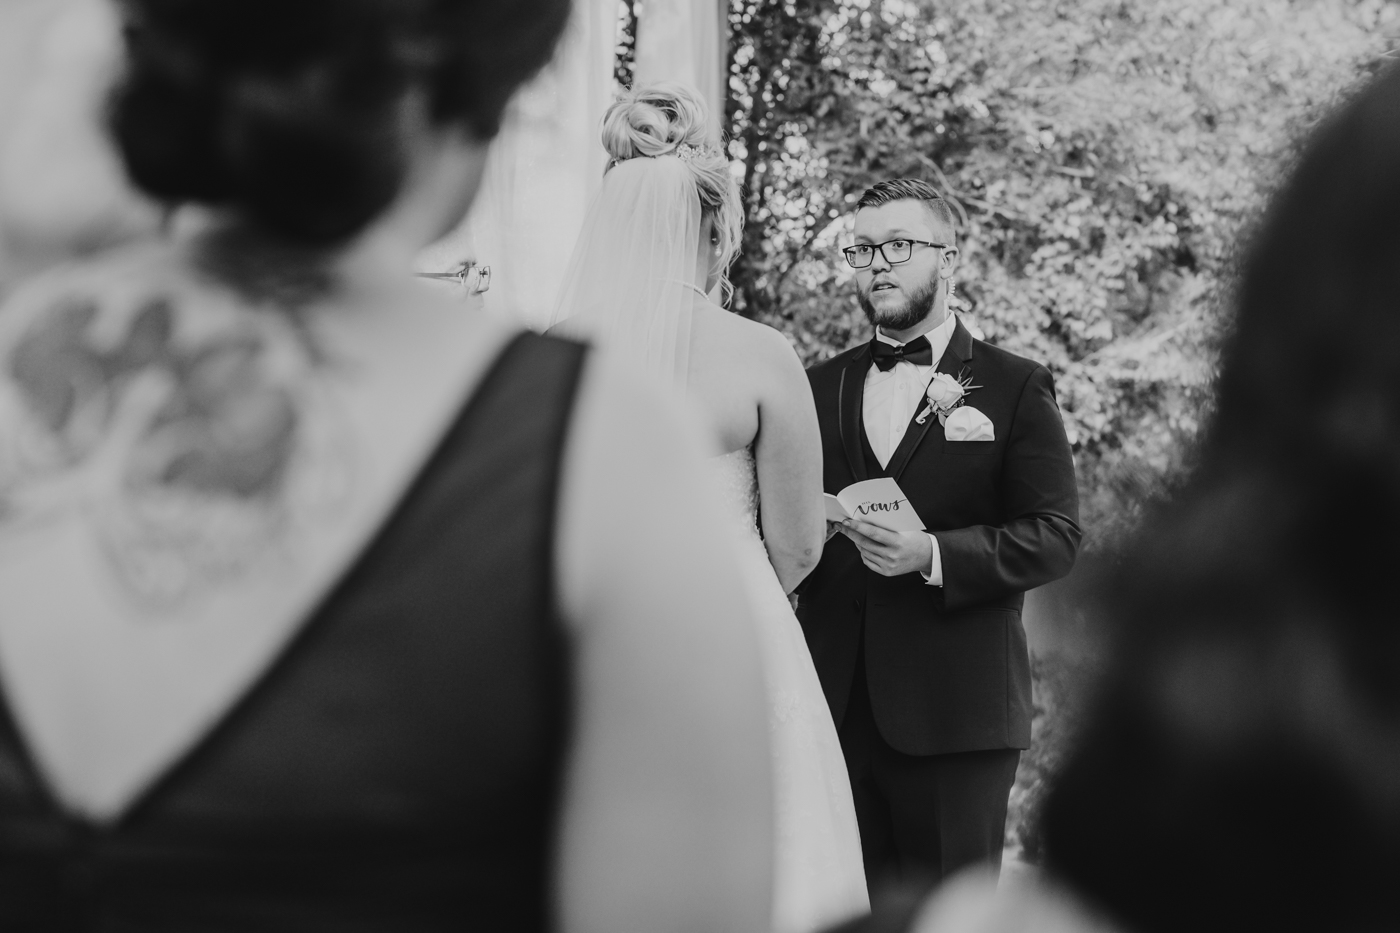 groom-reading-vows-at-wedding-ceremony